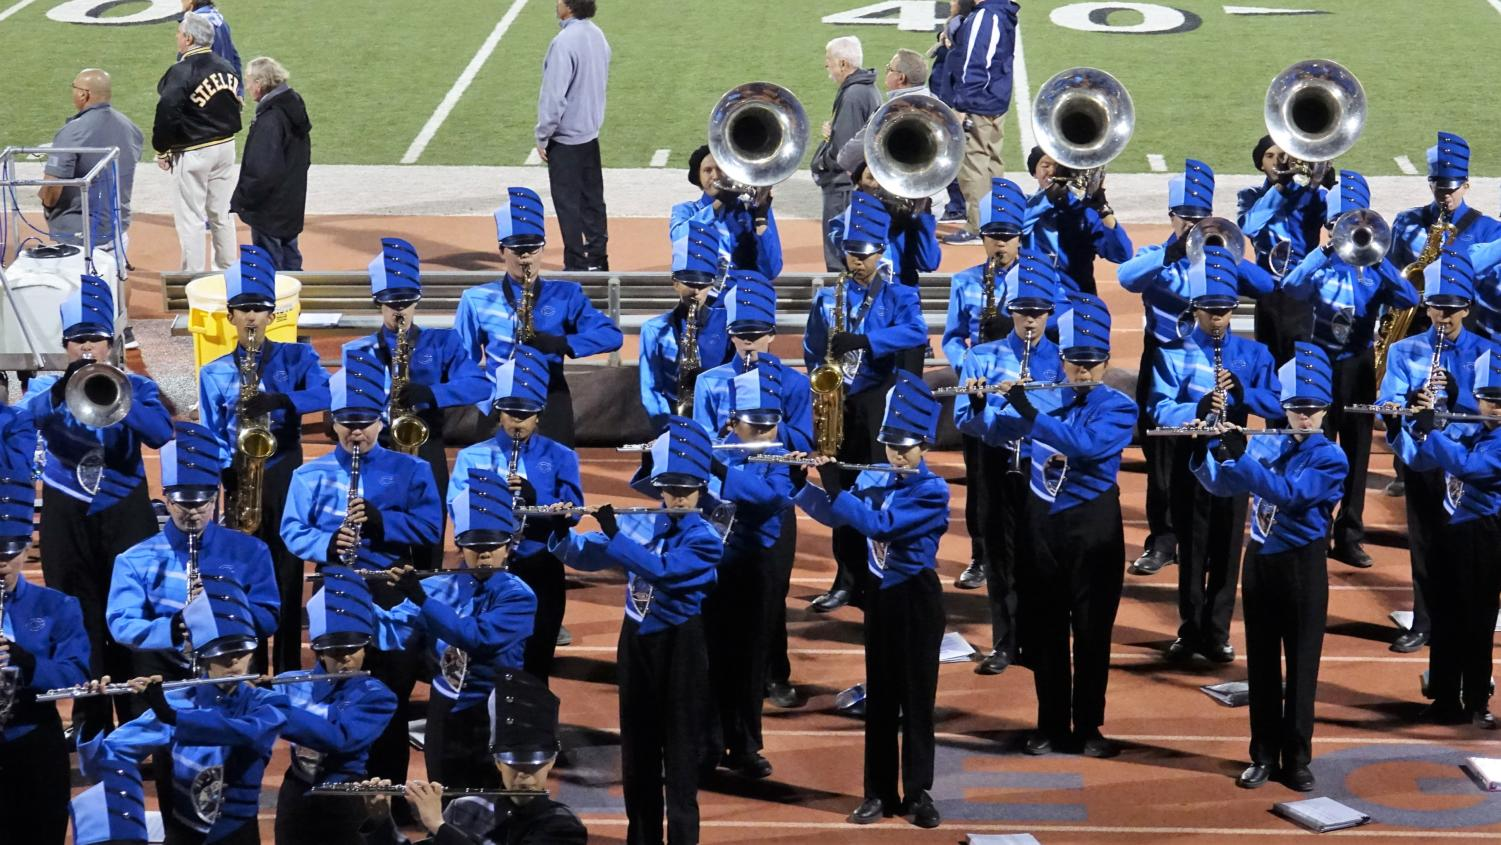 The ACHS Marching band performing at the Senior Night football game on Nov. 1, 2019.